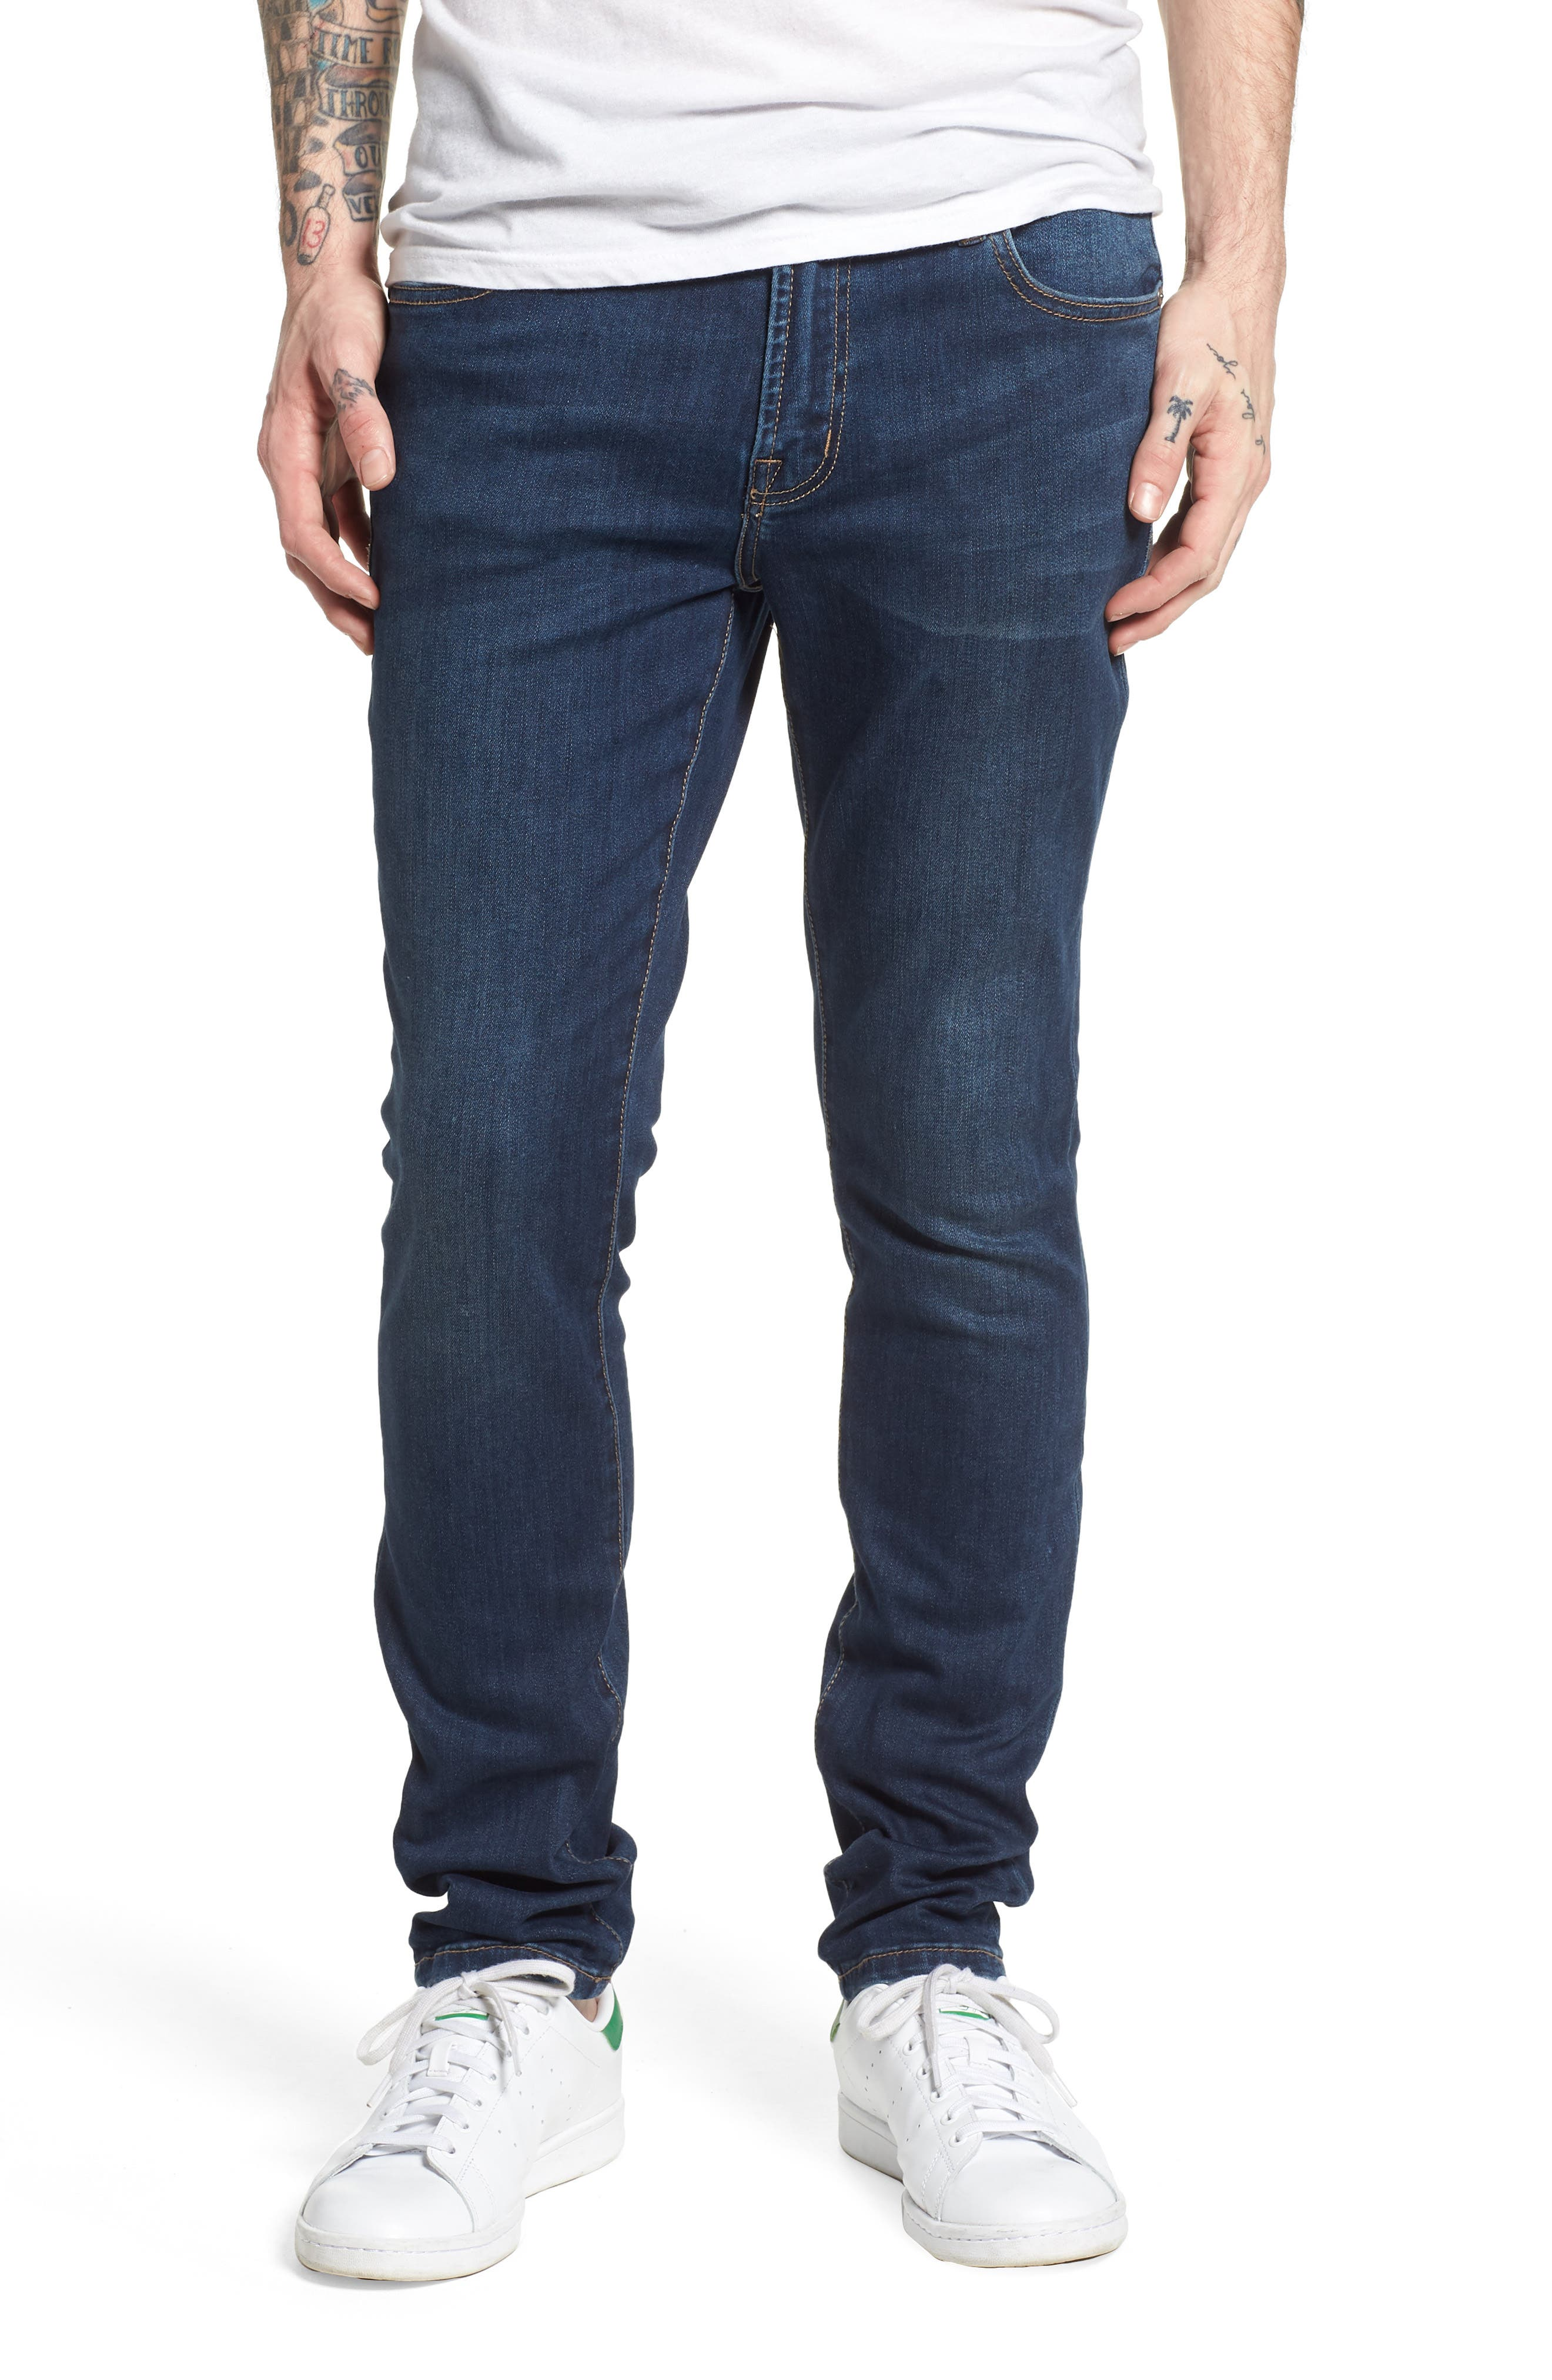 Jeans Co. Bond Skinny Fit Jeans,                             Main thumbnail 1, color,                             Cladwell Dark